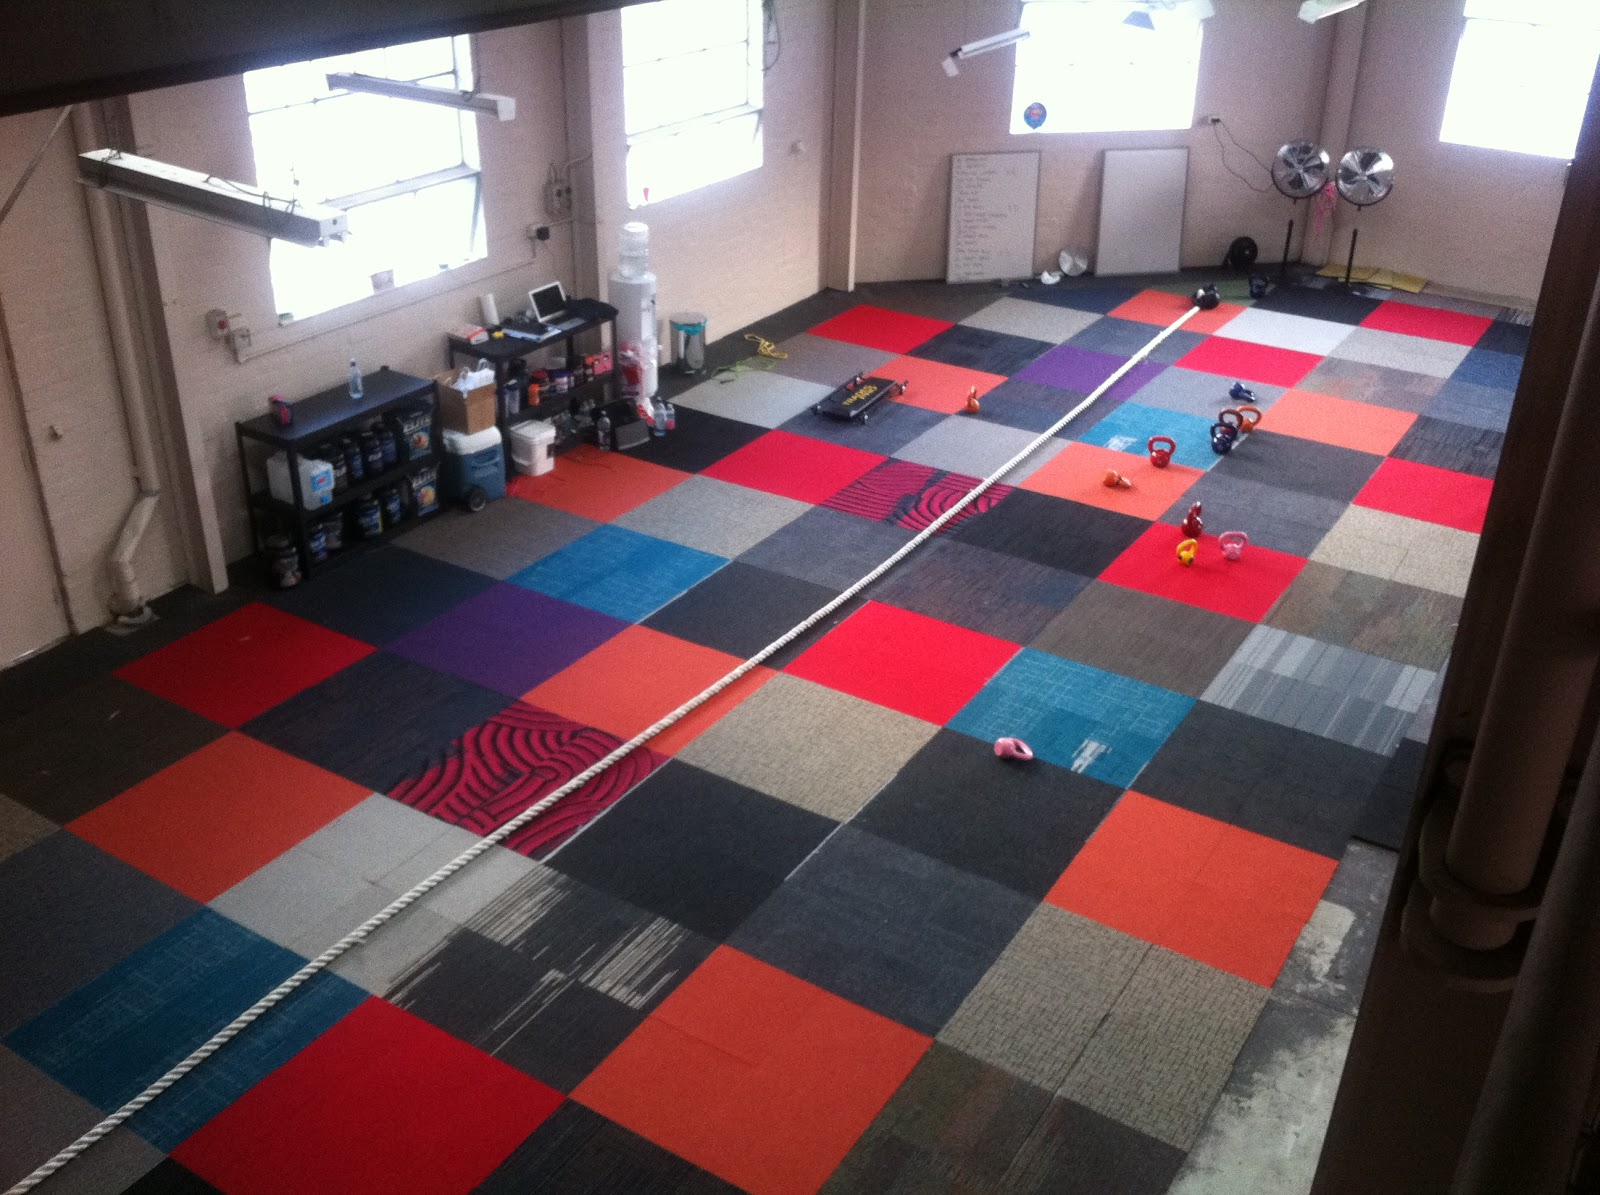 Carpet Tiles Design Ideas: Cheap Carpet Tile Perfect Option for ...